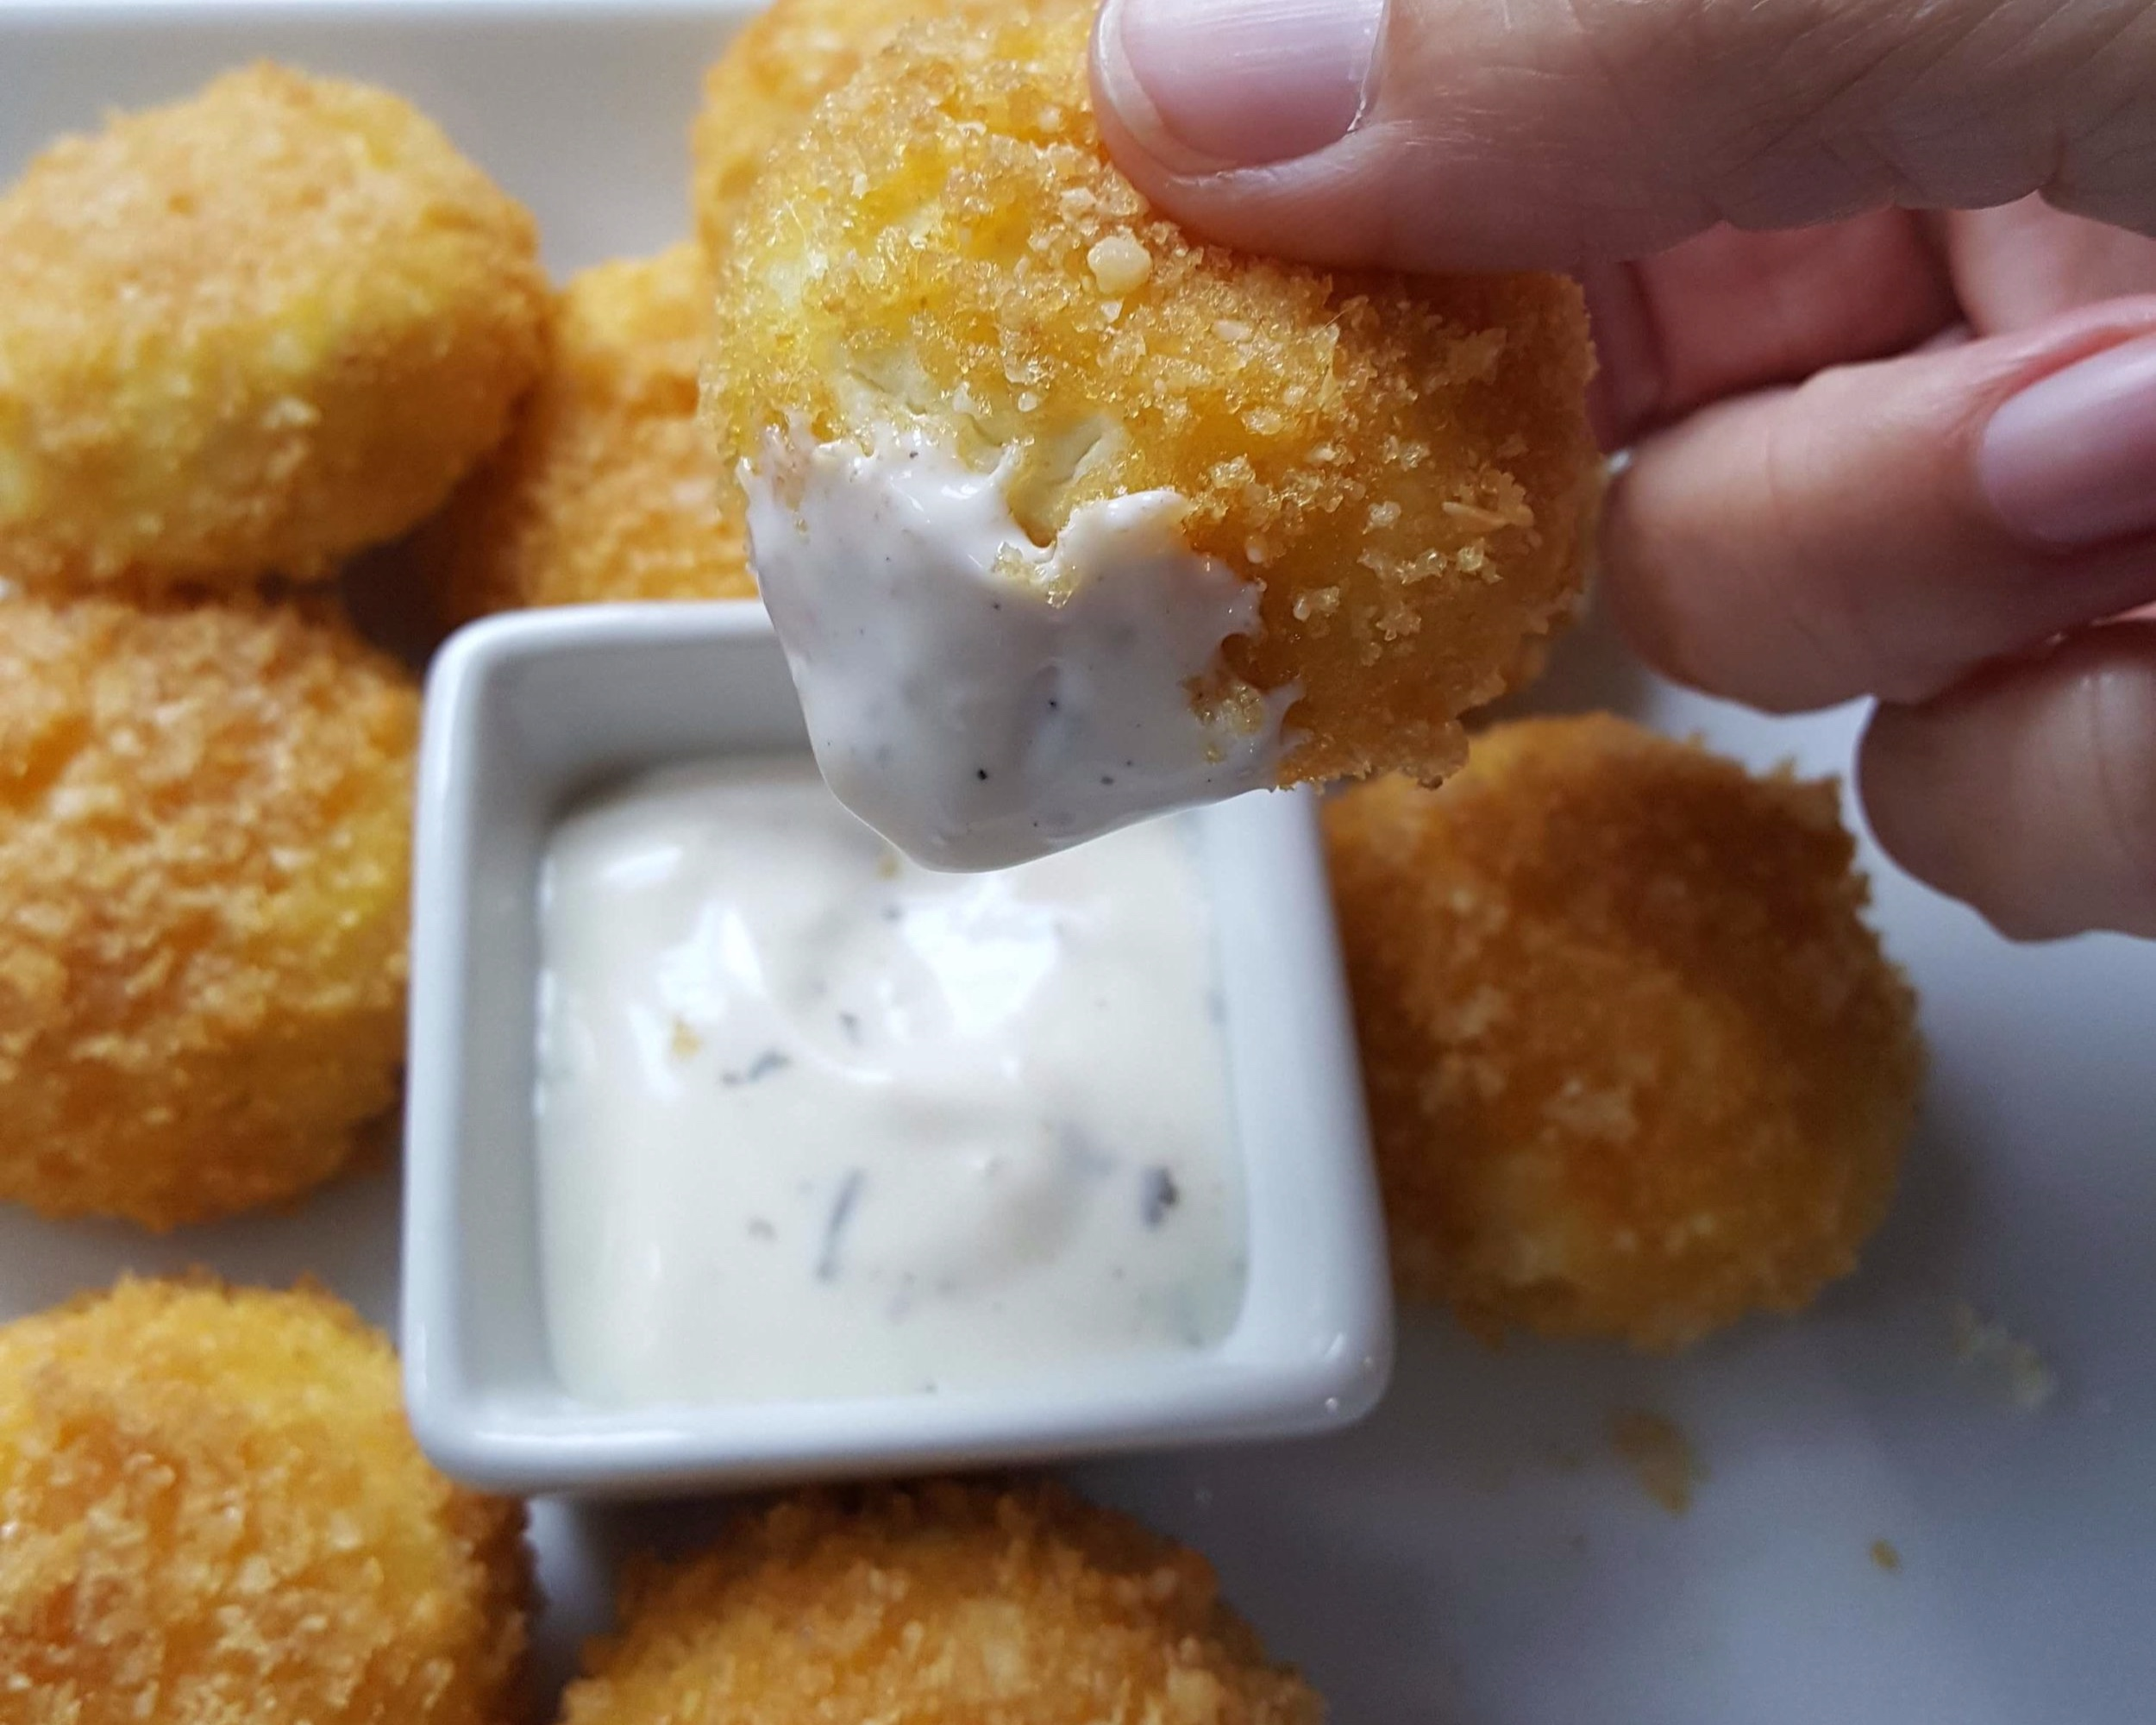 Crispy goat cheese dipped in ranch.